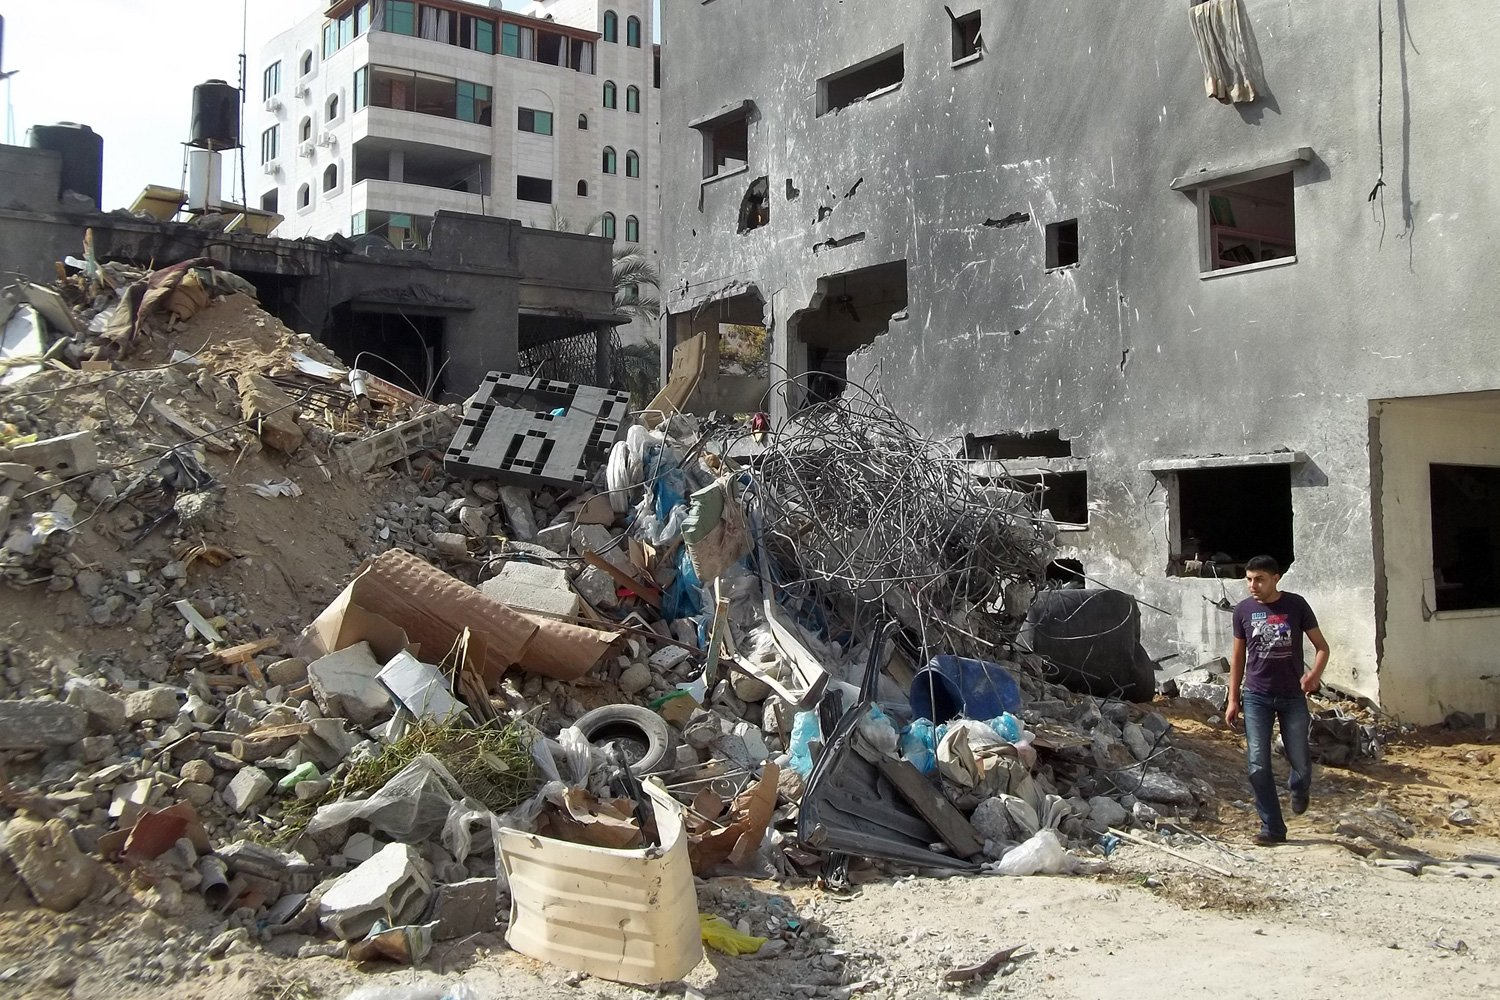 Ruins of Al Dalou family house, where at least 10 people were killed in an Israeli airstrike on Sunday evening